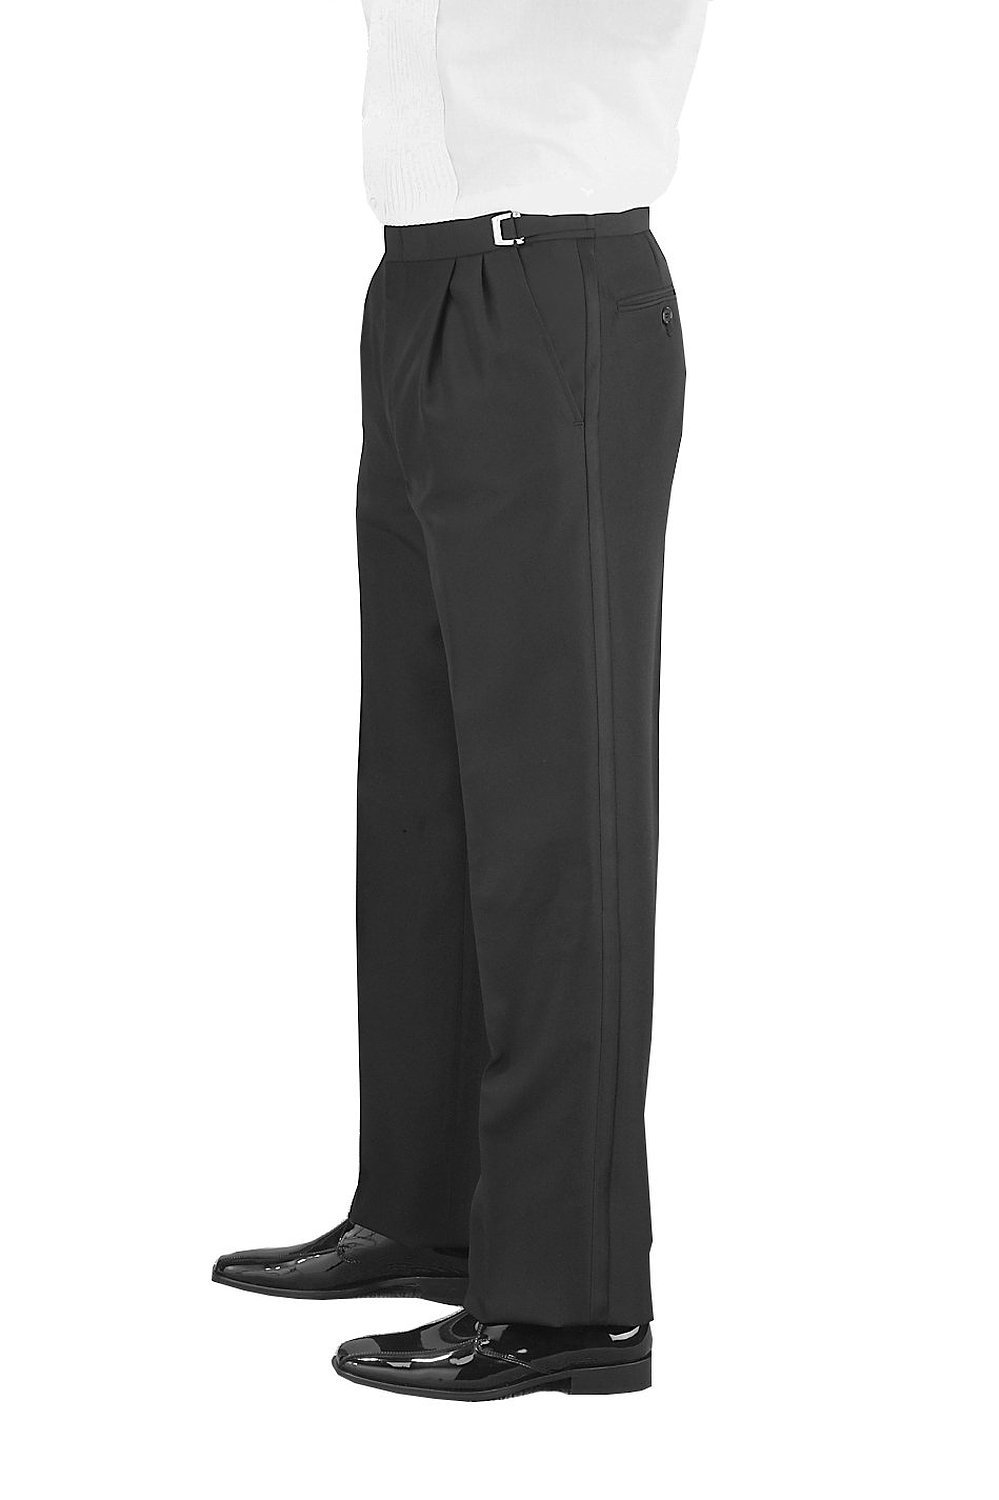 SixStarUniforms Men Black Adjustable Pleated Front Wool Tuxedo Pants - Size (36-37-38) by SixStarUniforms